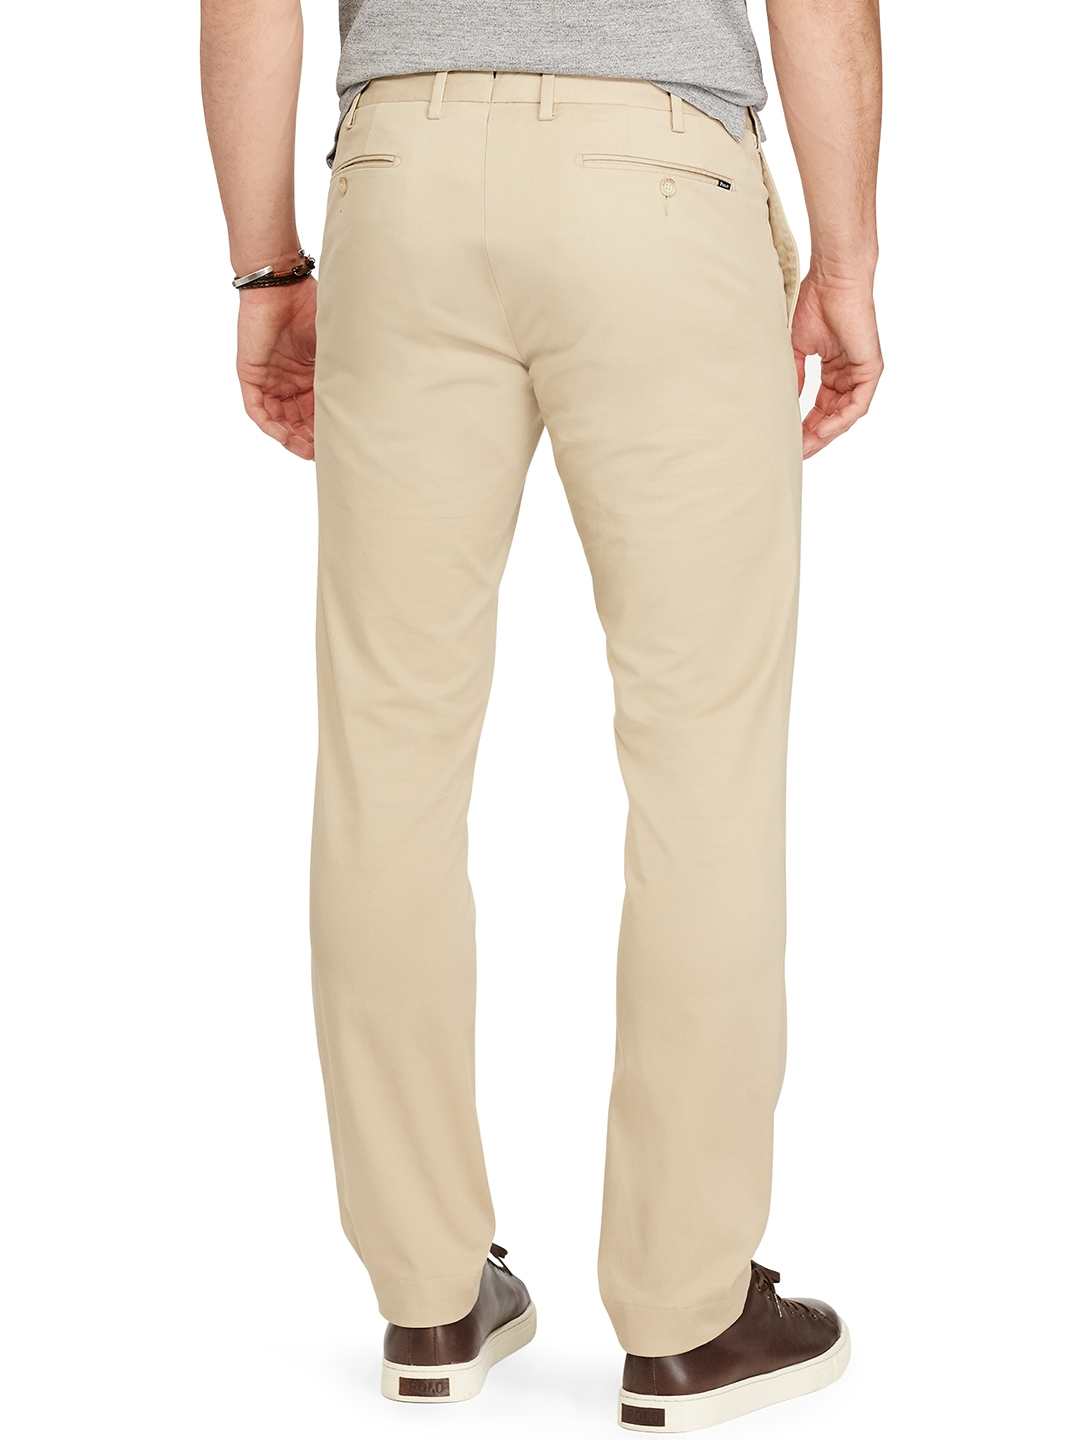 89f661c250c2 Buy Polo Ralph Lauren Stretch Slim Fit Chinos - Trousers for Men ...